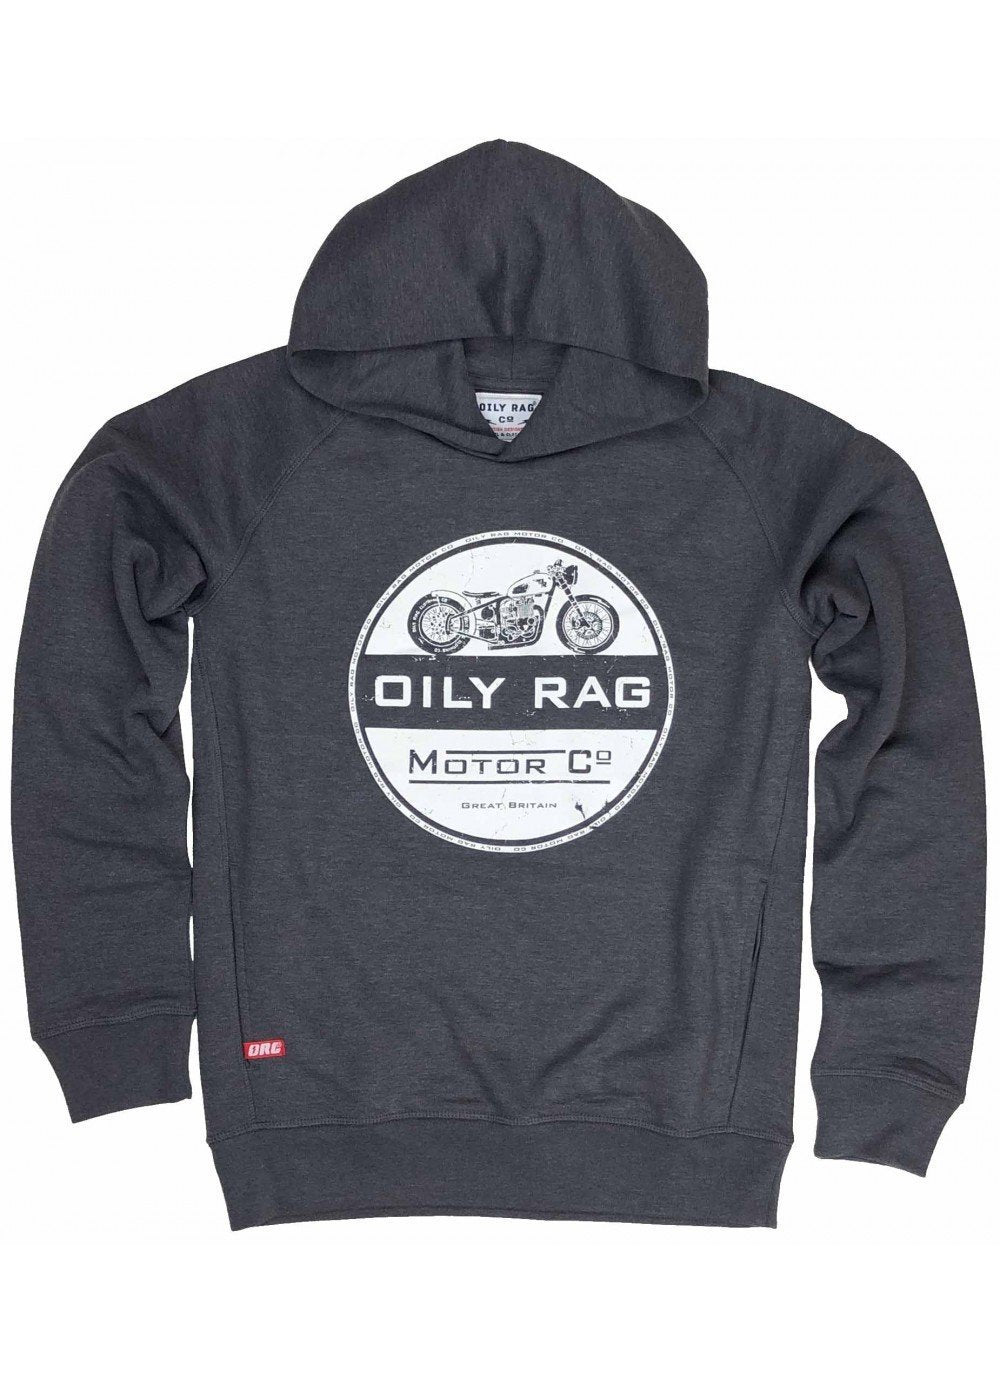 Oily Rag Clothing - Oily Rag Clothing Unisex Motor Co Black Label Hoodie - Hoodies | Sweatshirts | Wind Stoppers - Salt Flats Clothing